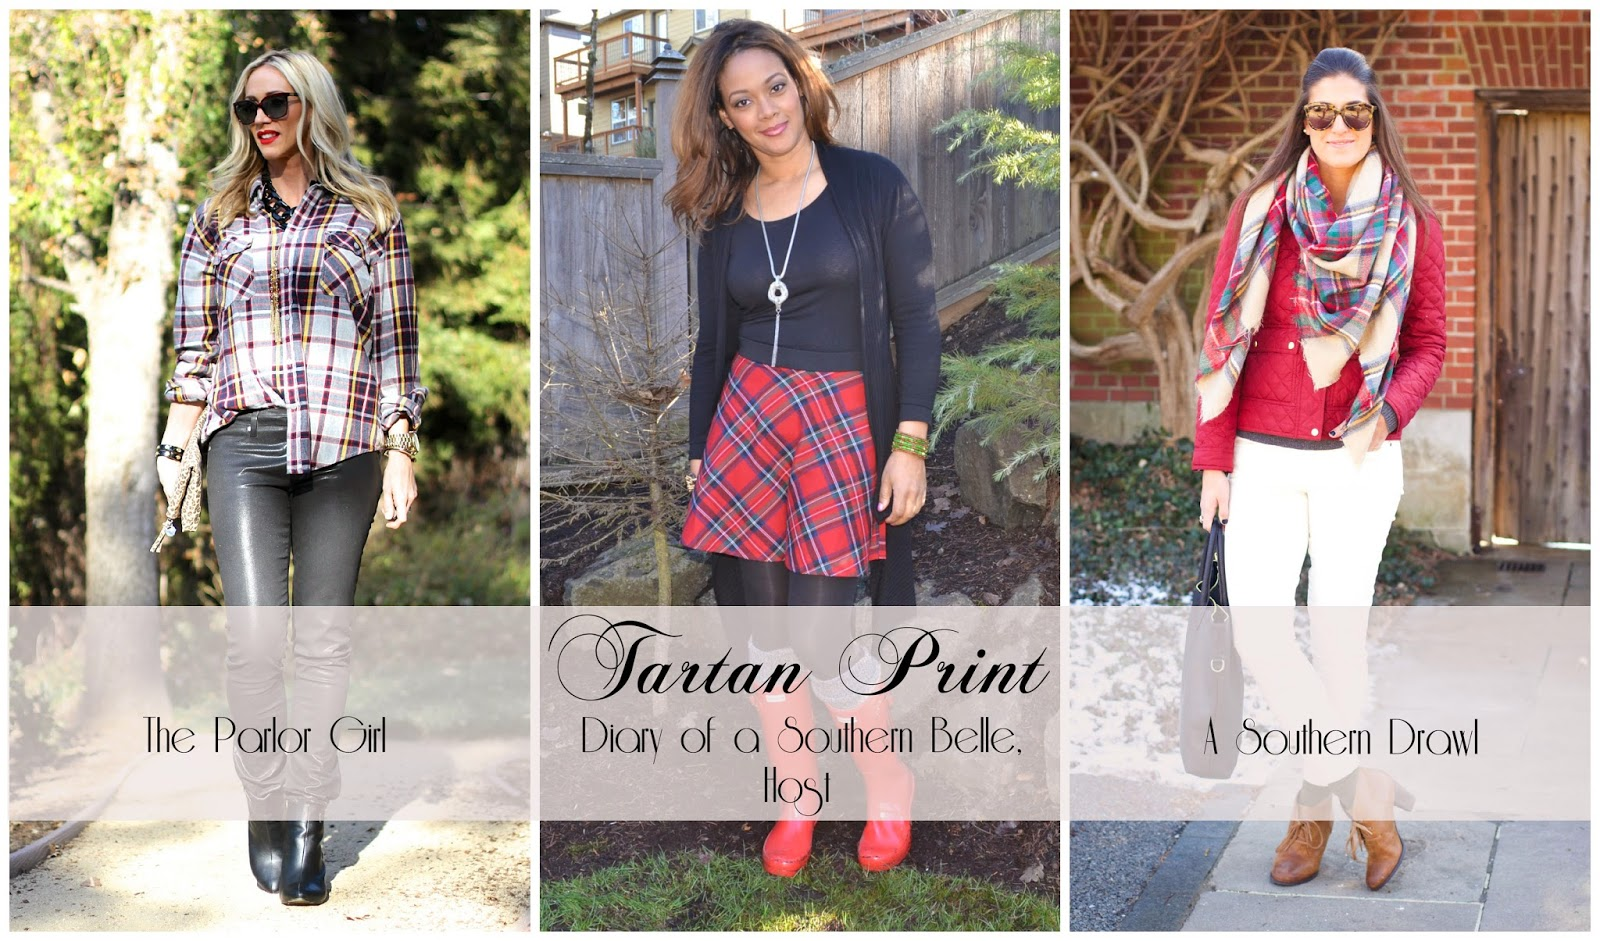 tartan print styled 3 different ways